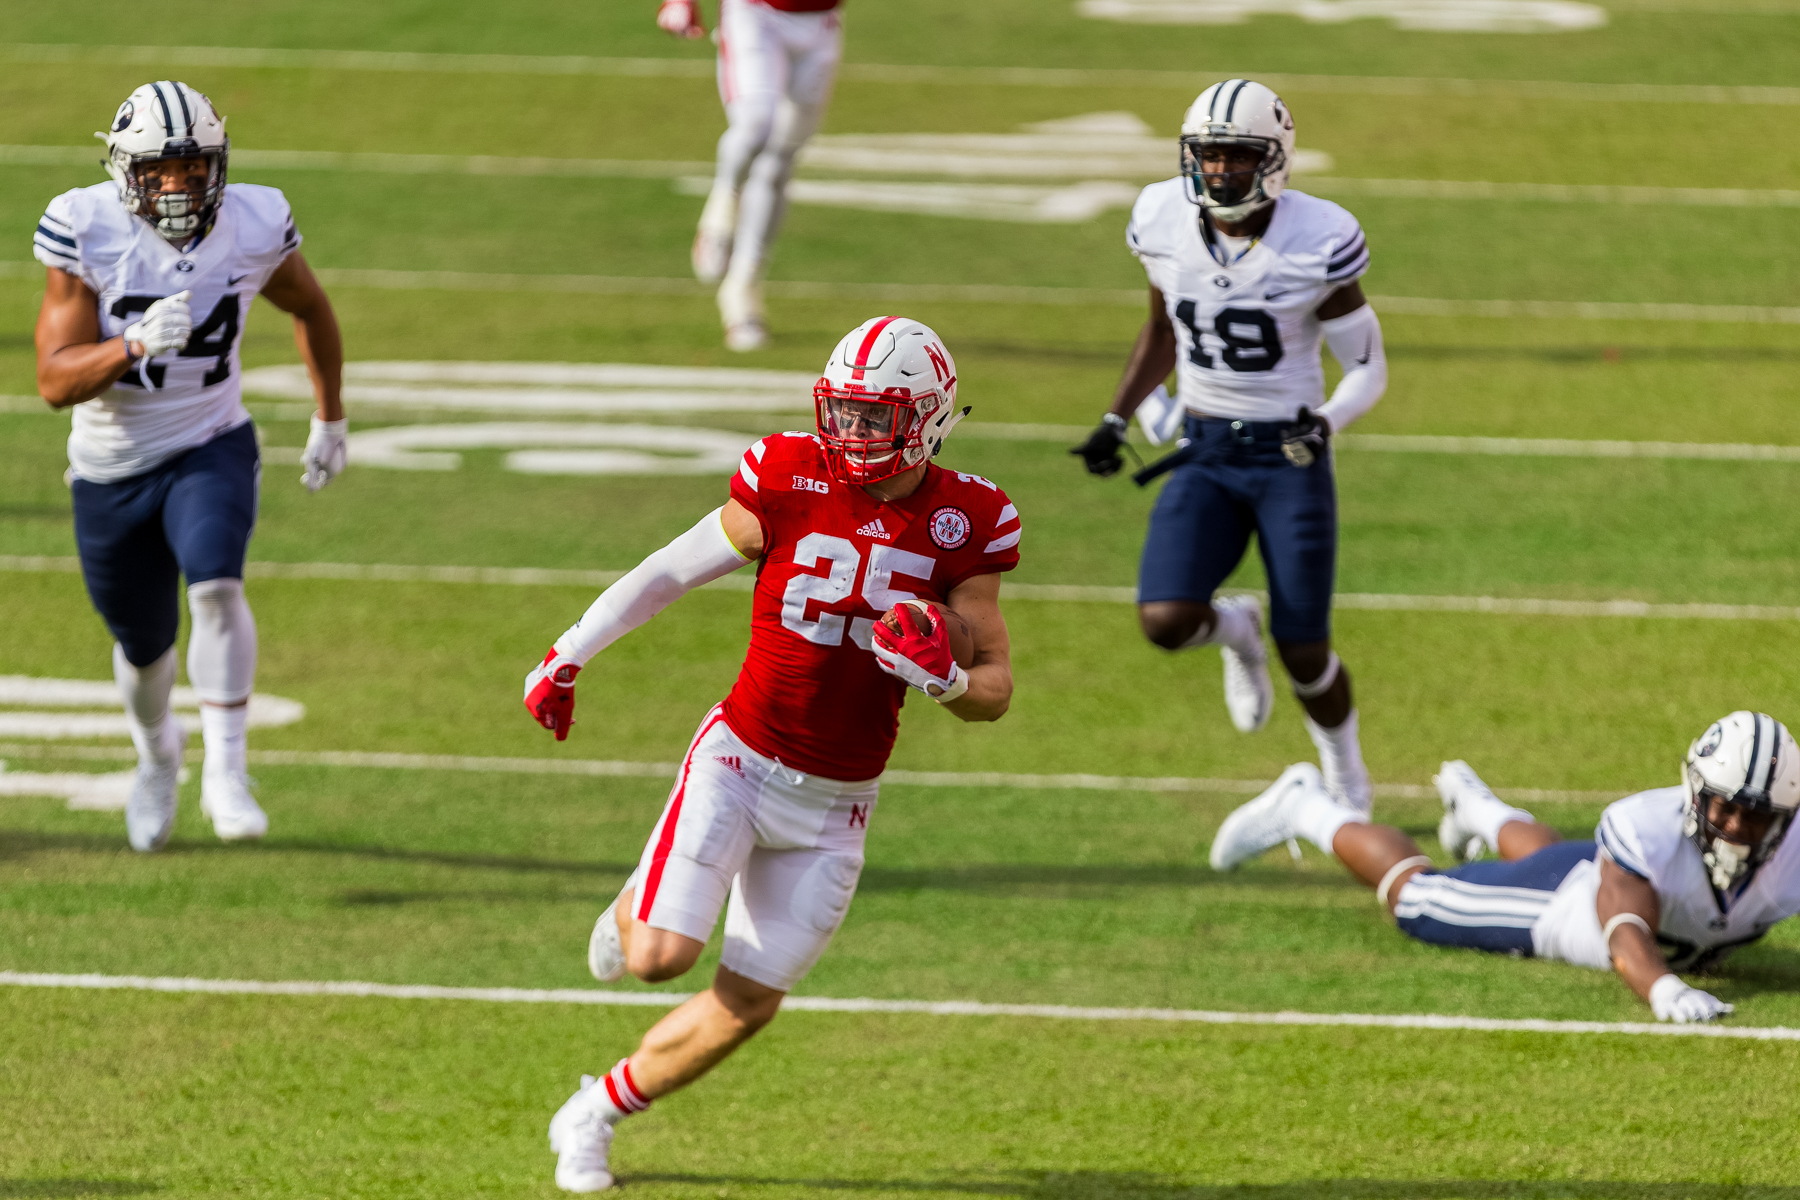 Nate Gerry #25 of the Nebraska Cornhuskers returns an interception in the second half of Nebraska's 33-28 loss to BYU on Sept. 5, 2015. Photo by Aaron Babcock